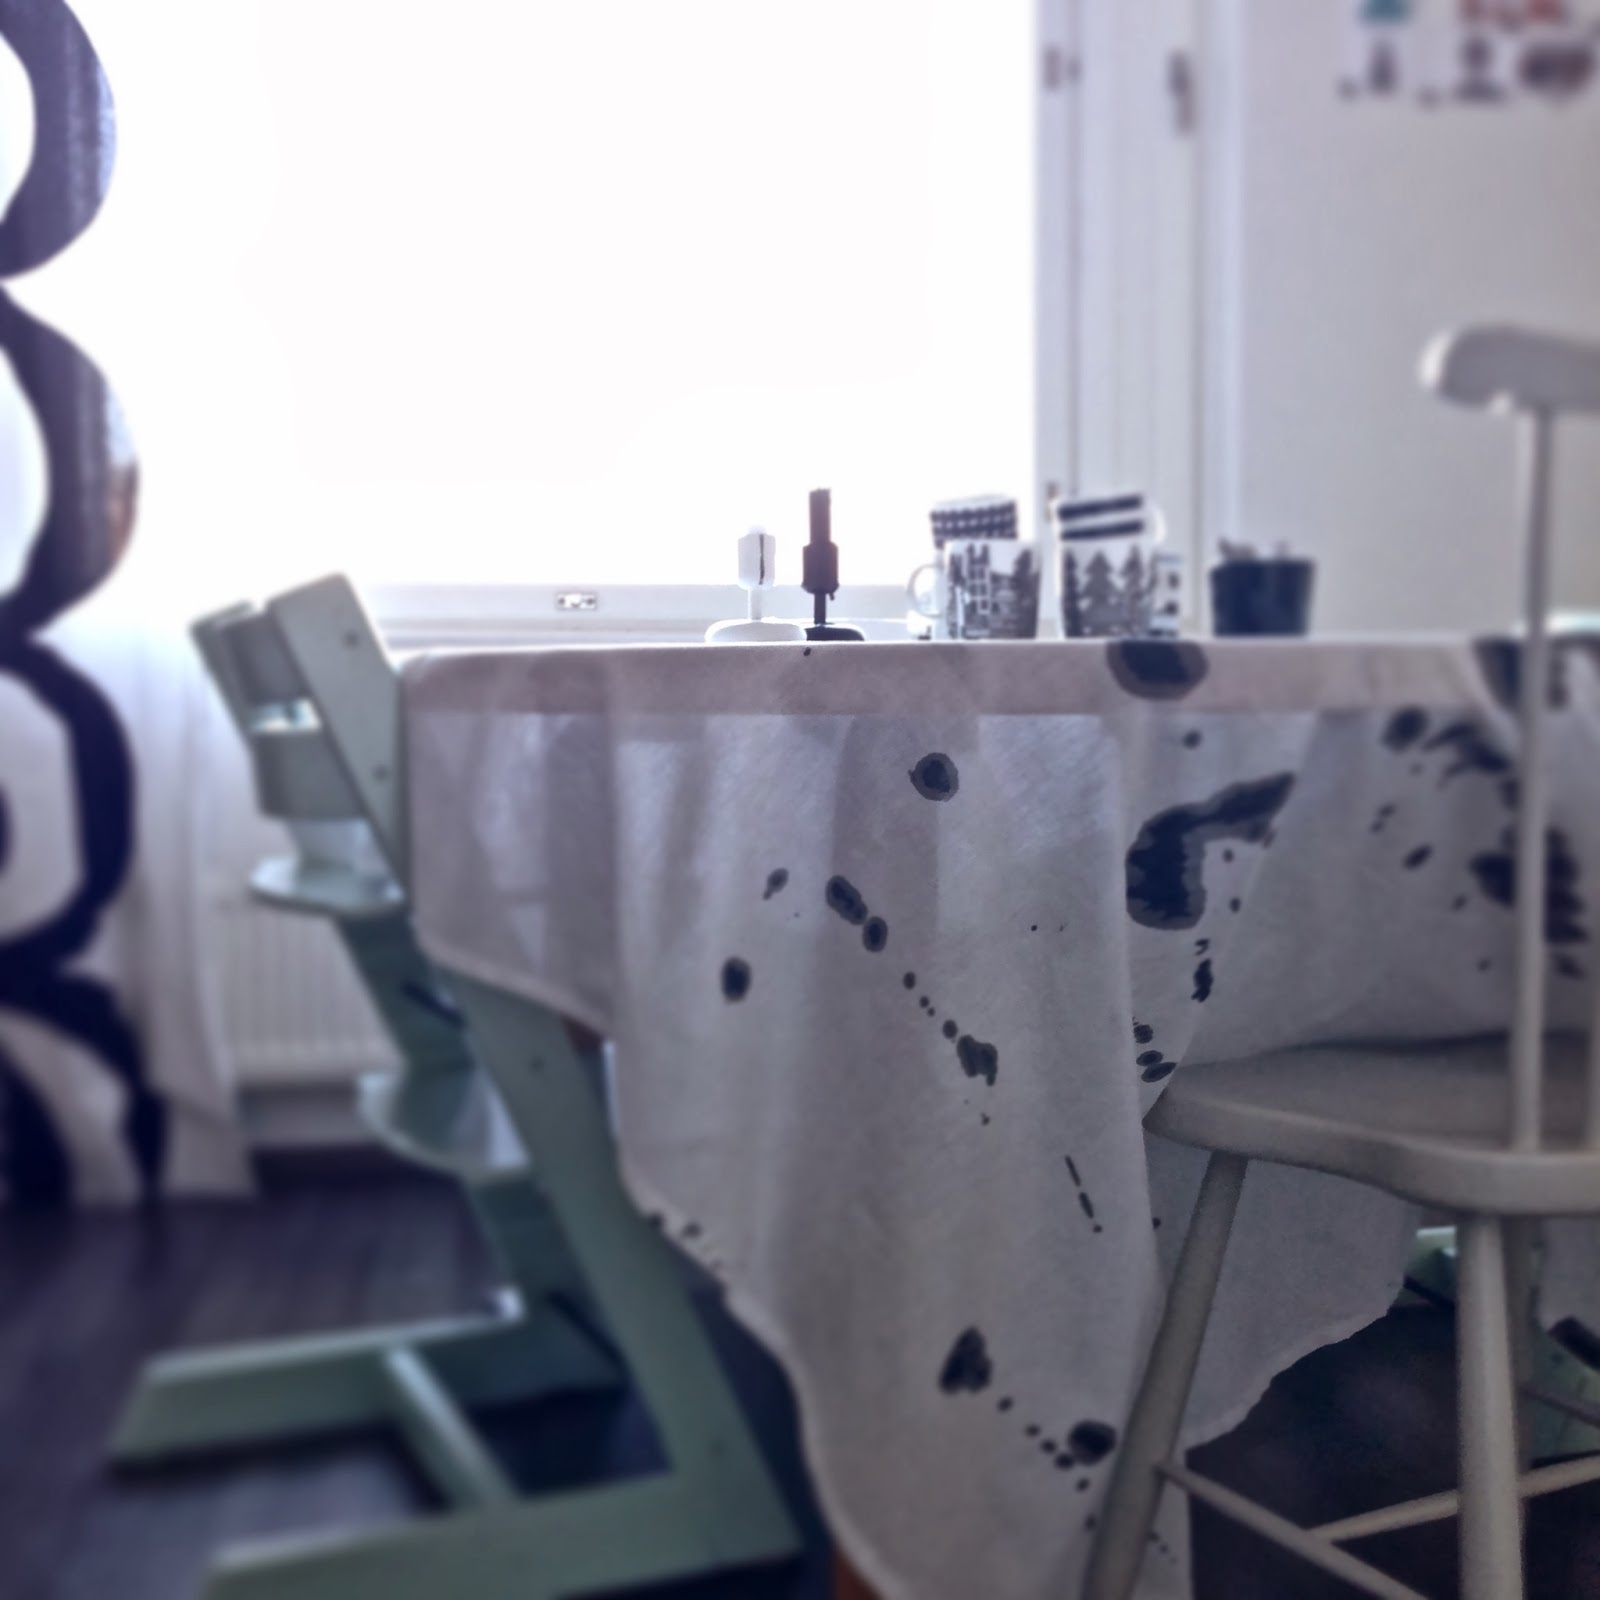 DIY, bordduk, pöytäliina, table cloth